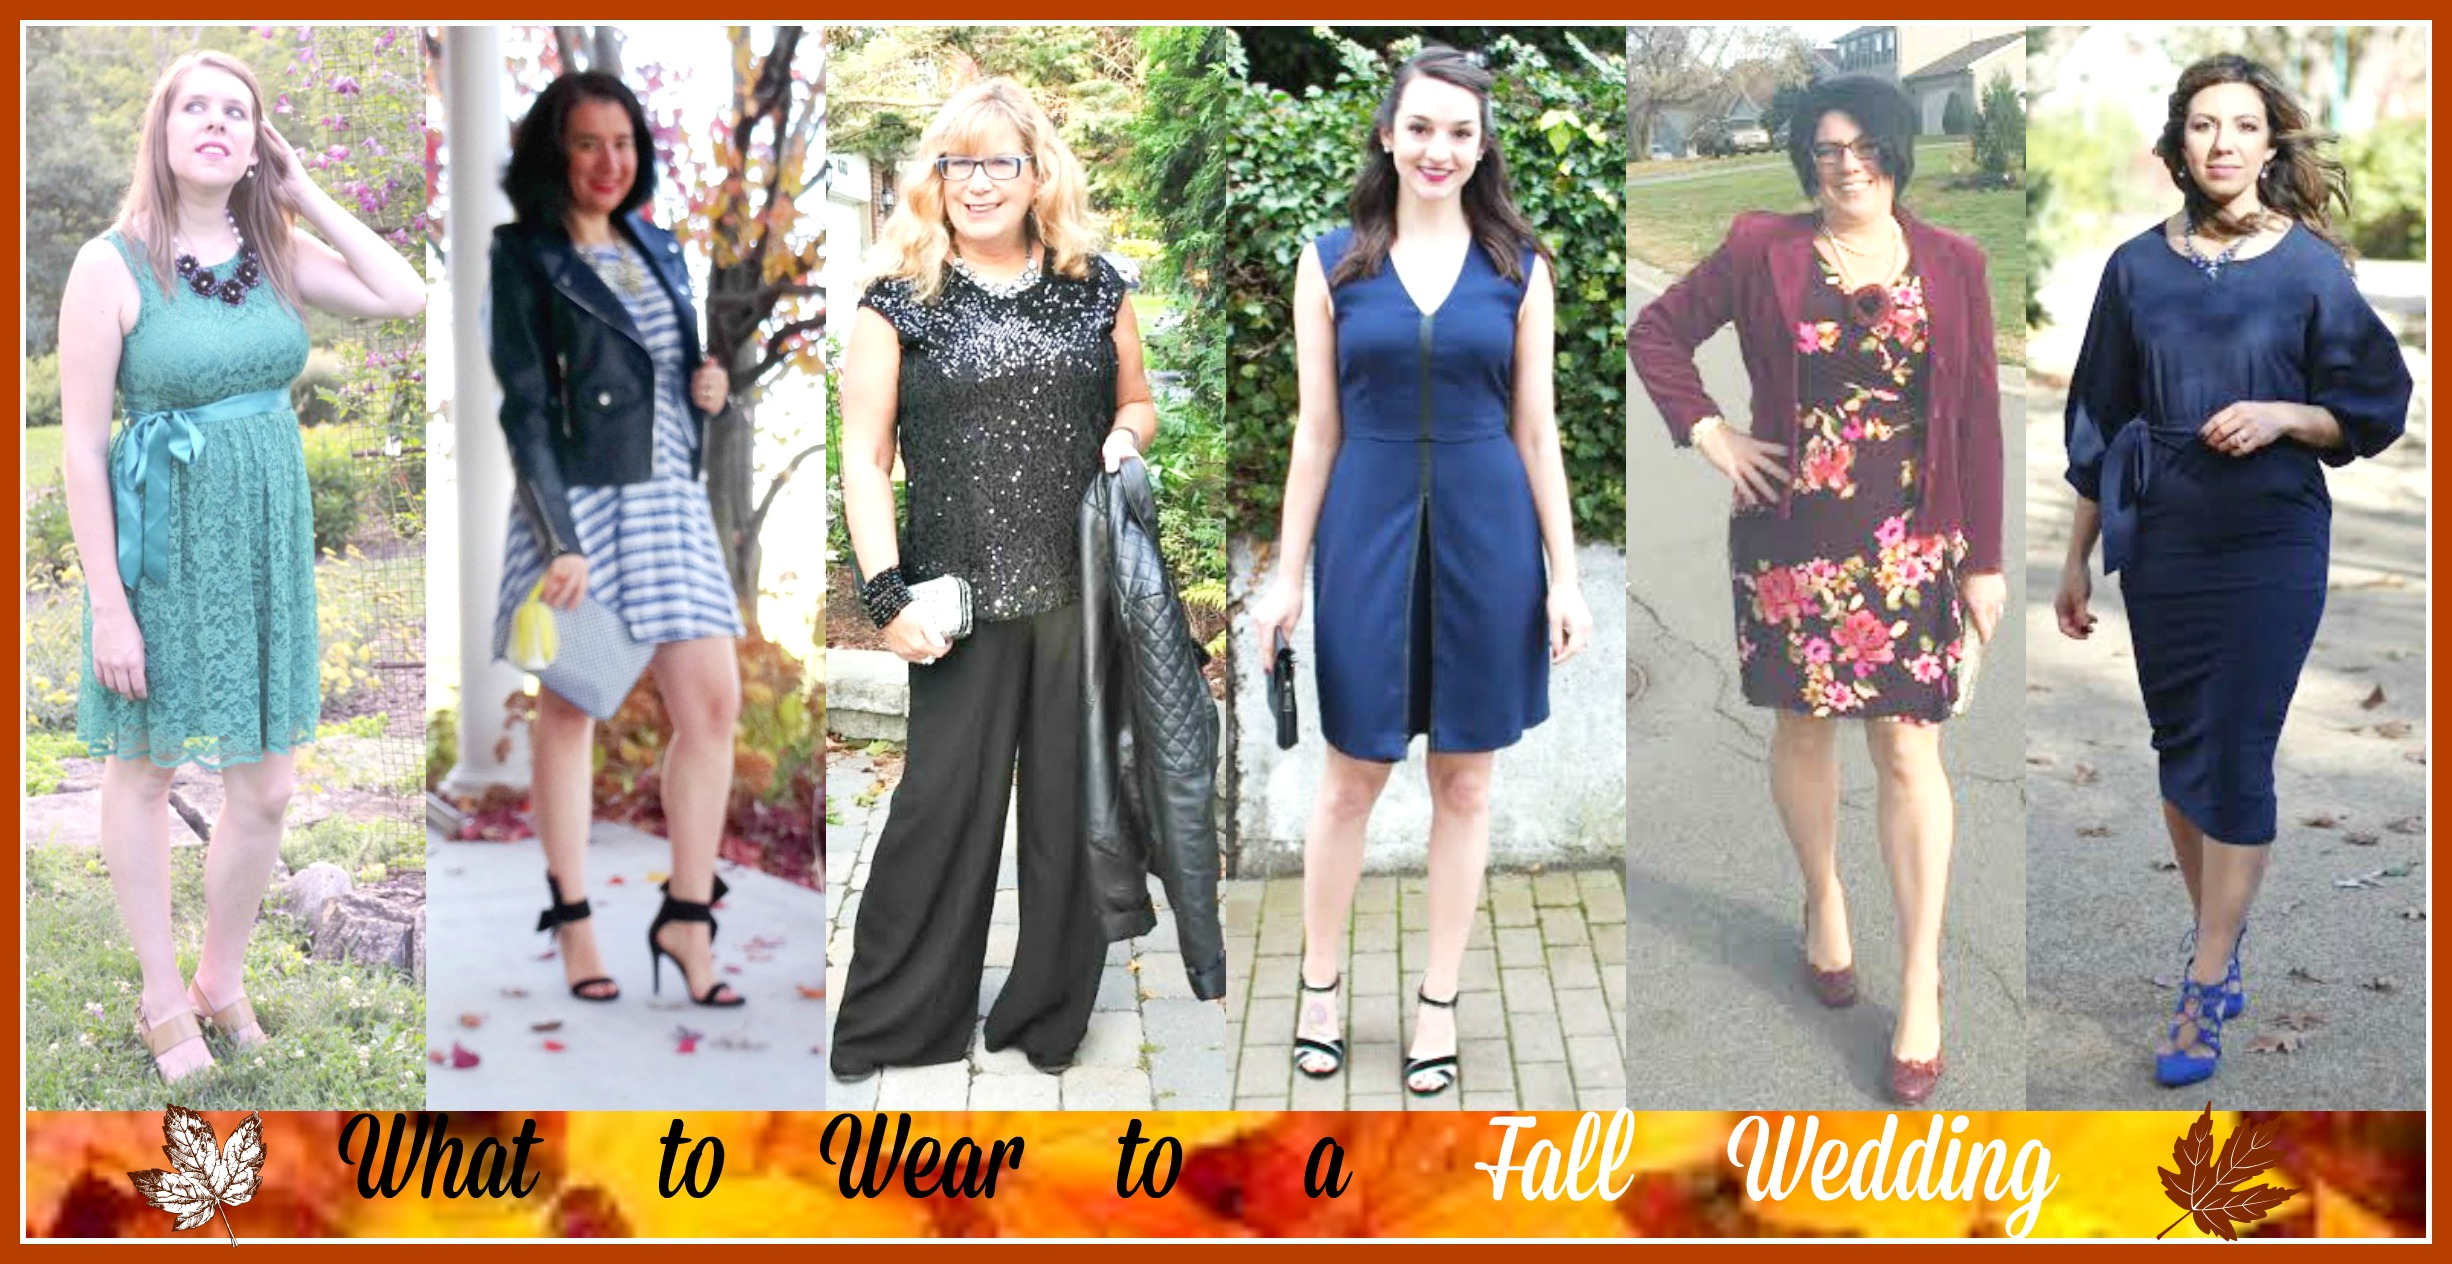 What To Wear To A Fall Wedding: 6 Outfits by 6 Gorgeous Gals